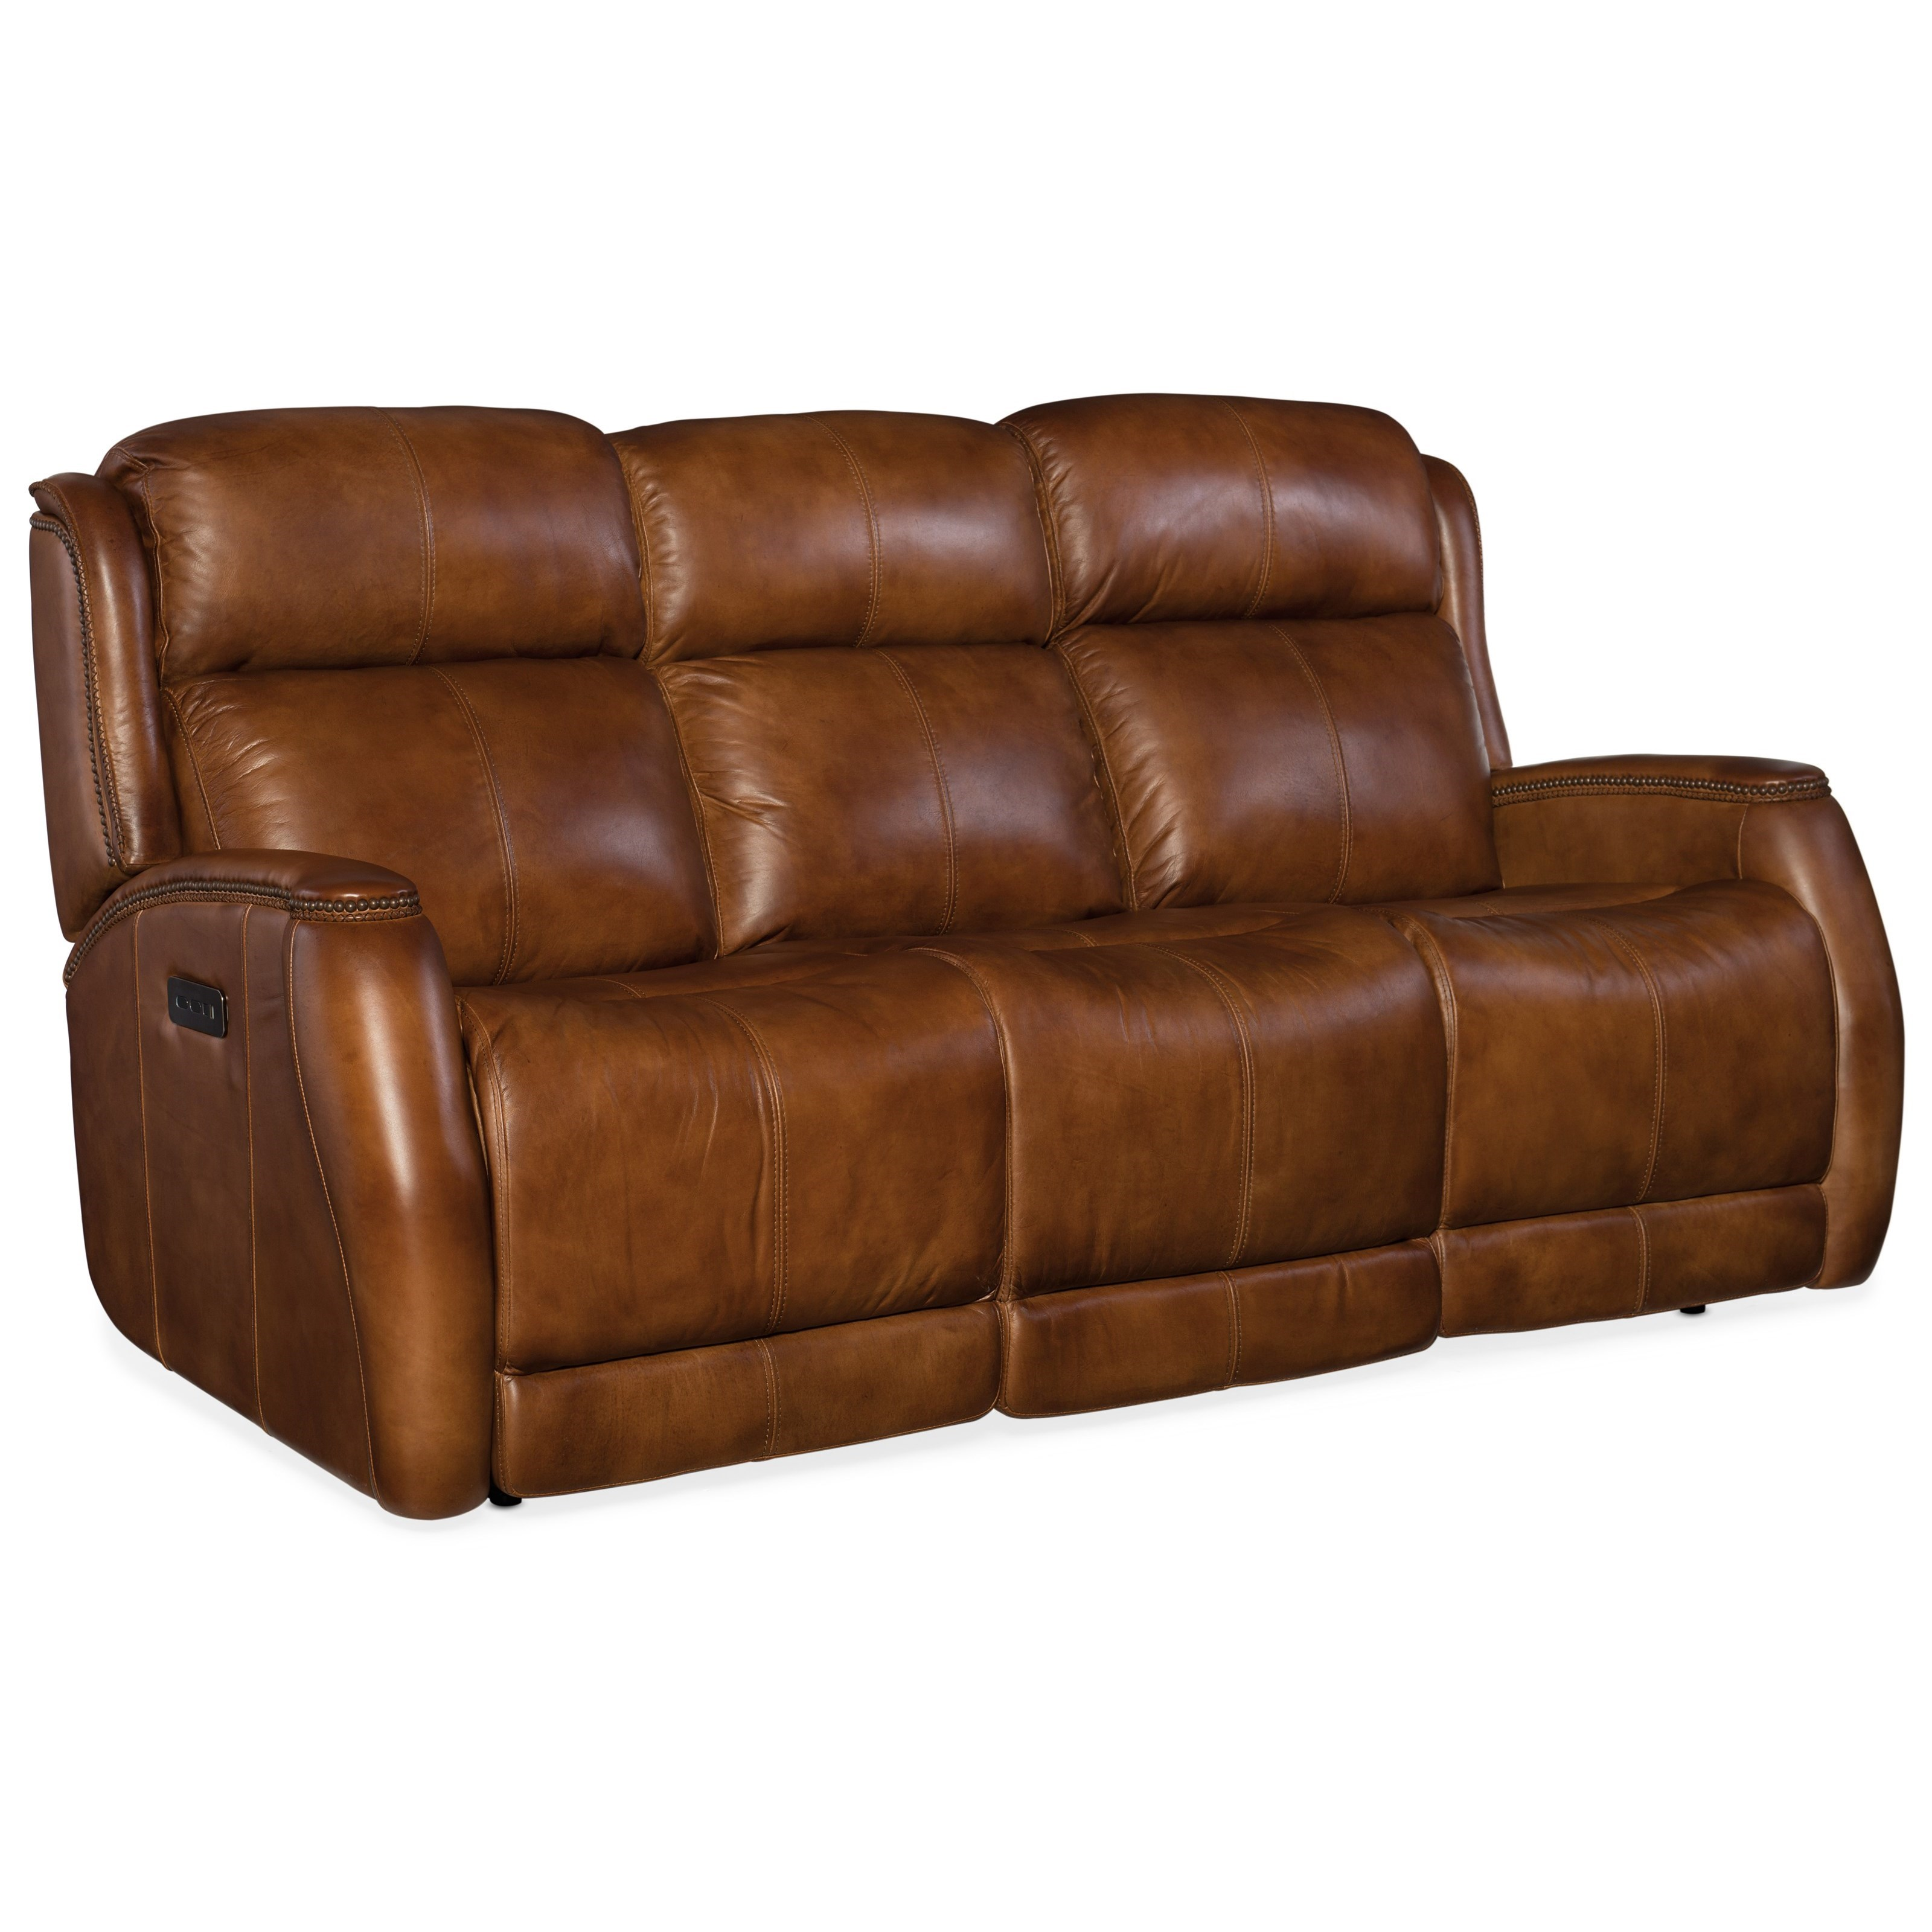 Hooker Furniture Emerson Ss426 P3 085 Power Sofa With